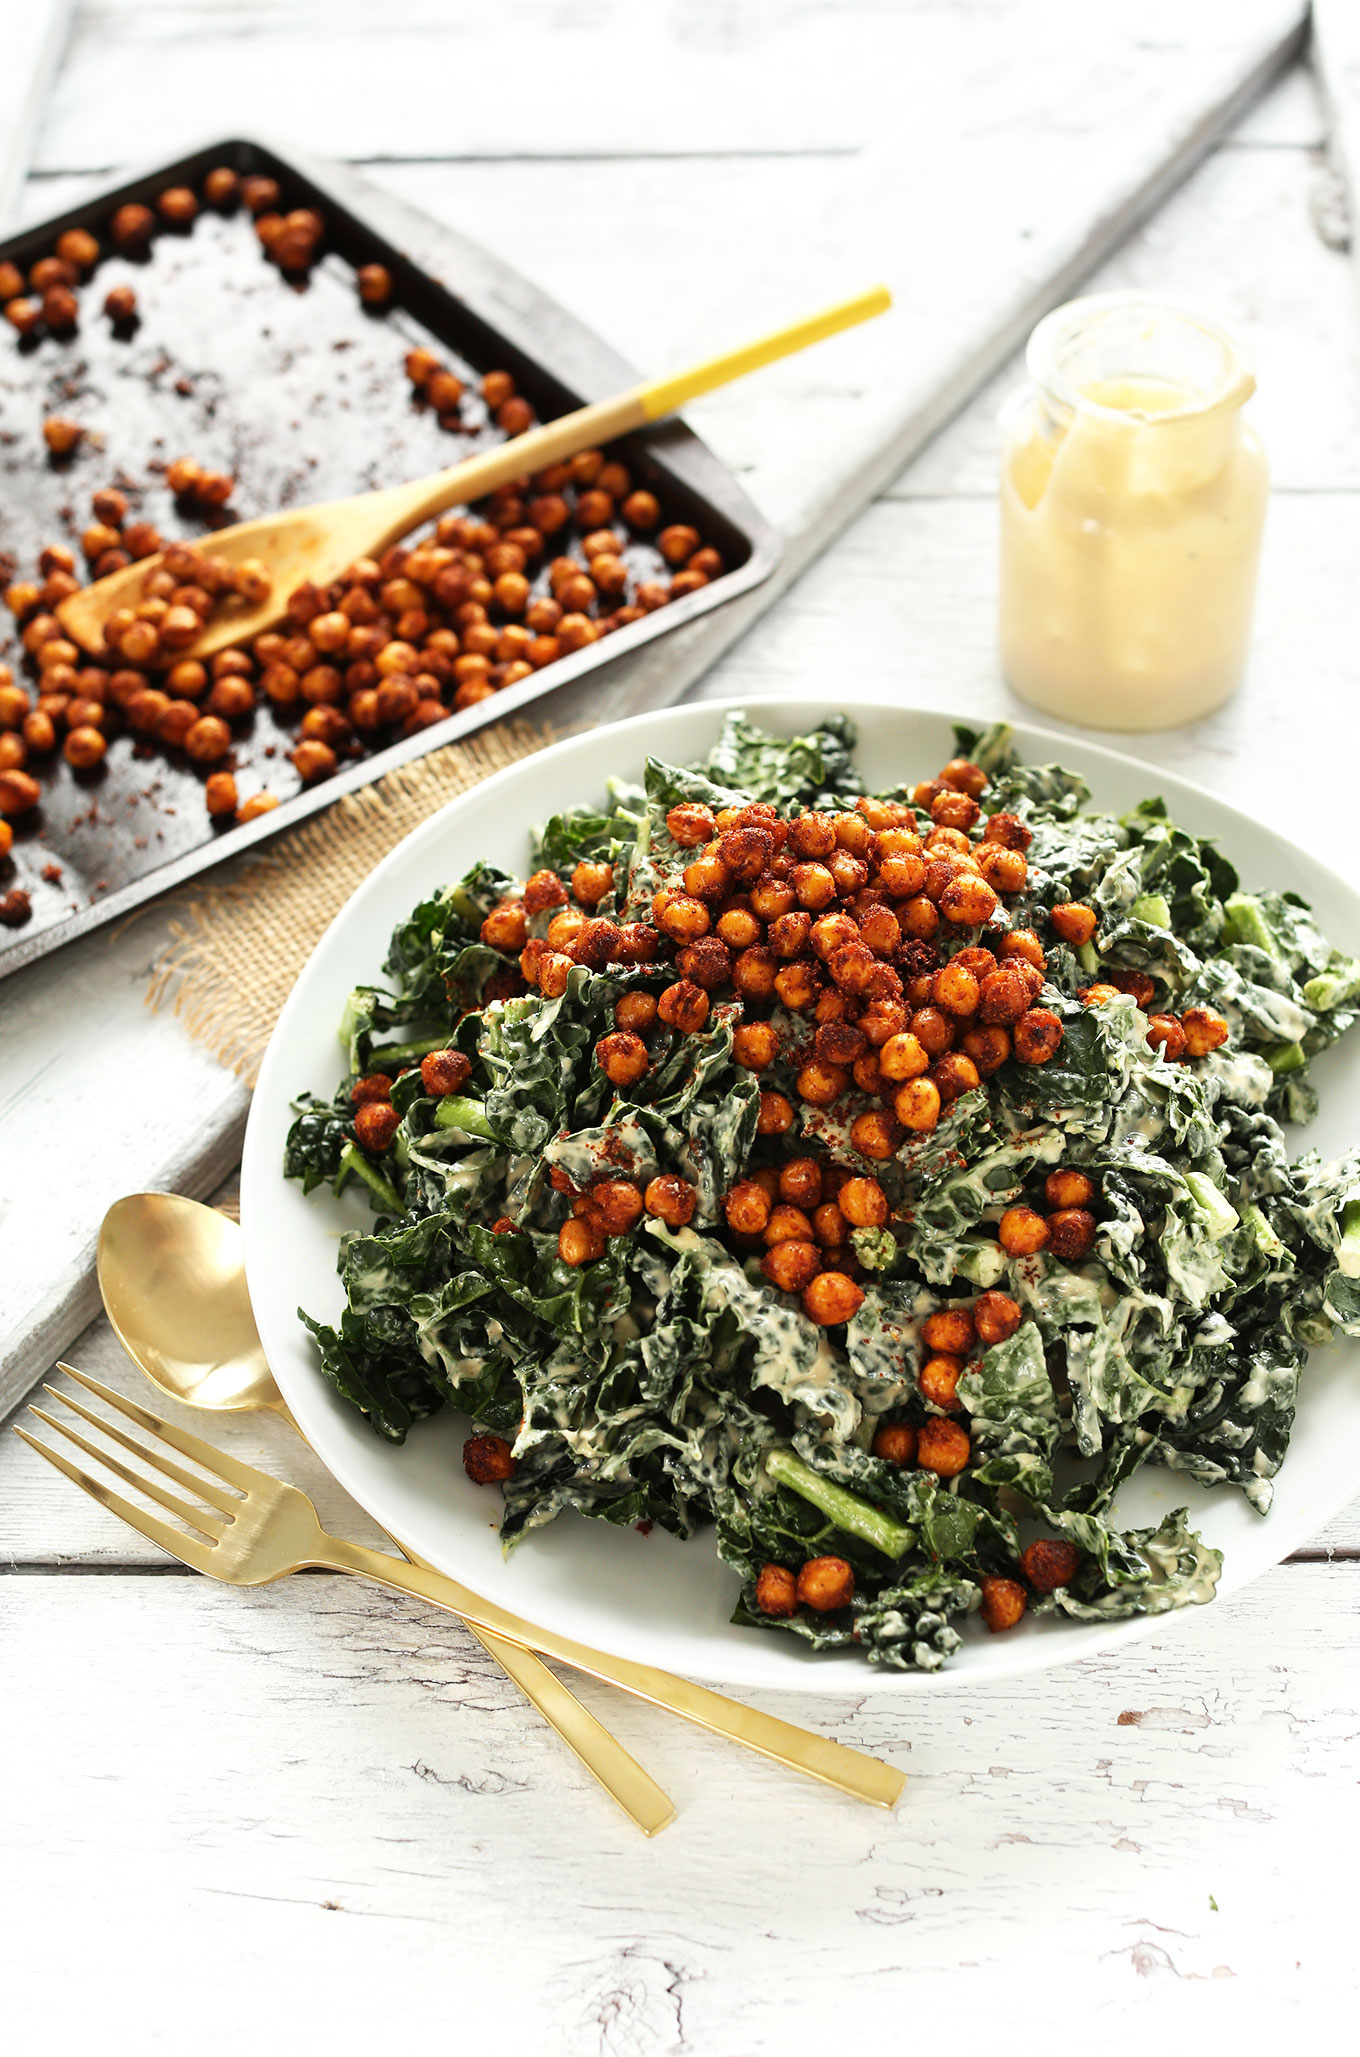 Big serving of our Garlicky Kale Salad with Tandoori Spiced Chickpeas for a simple gluten-free vegan meal